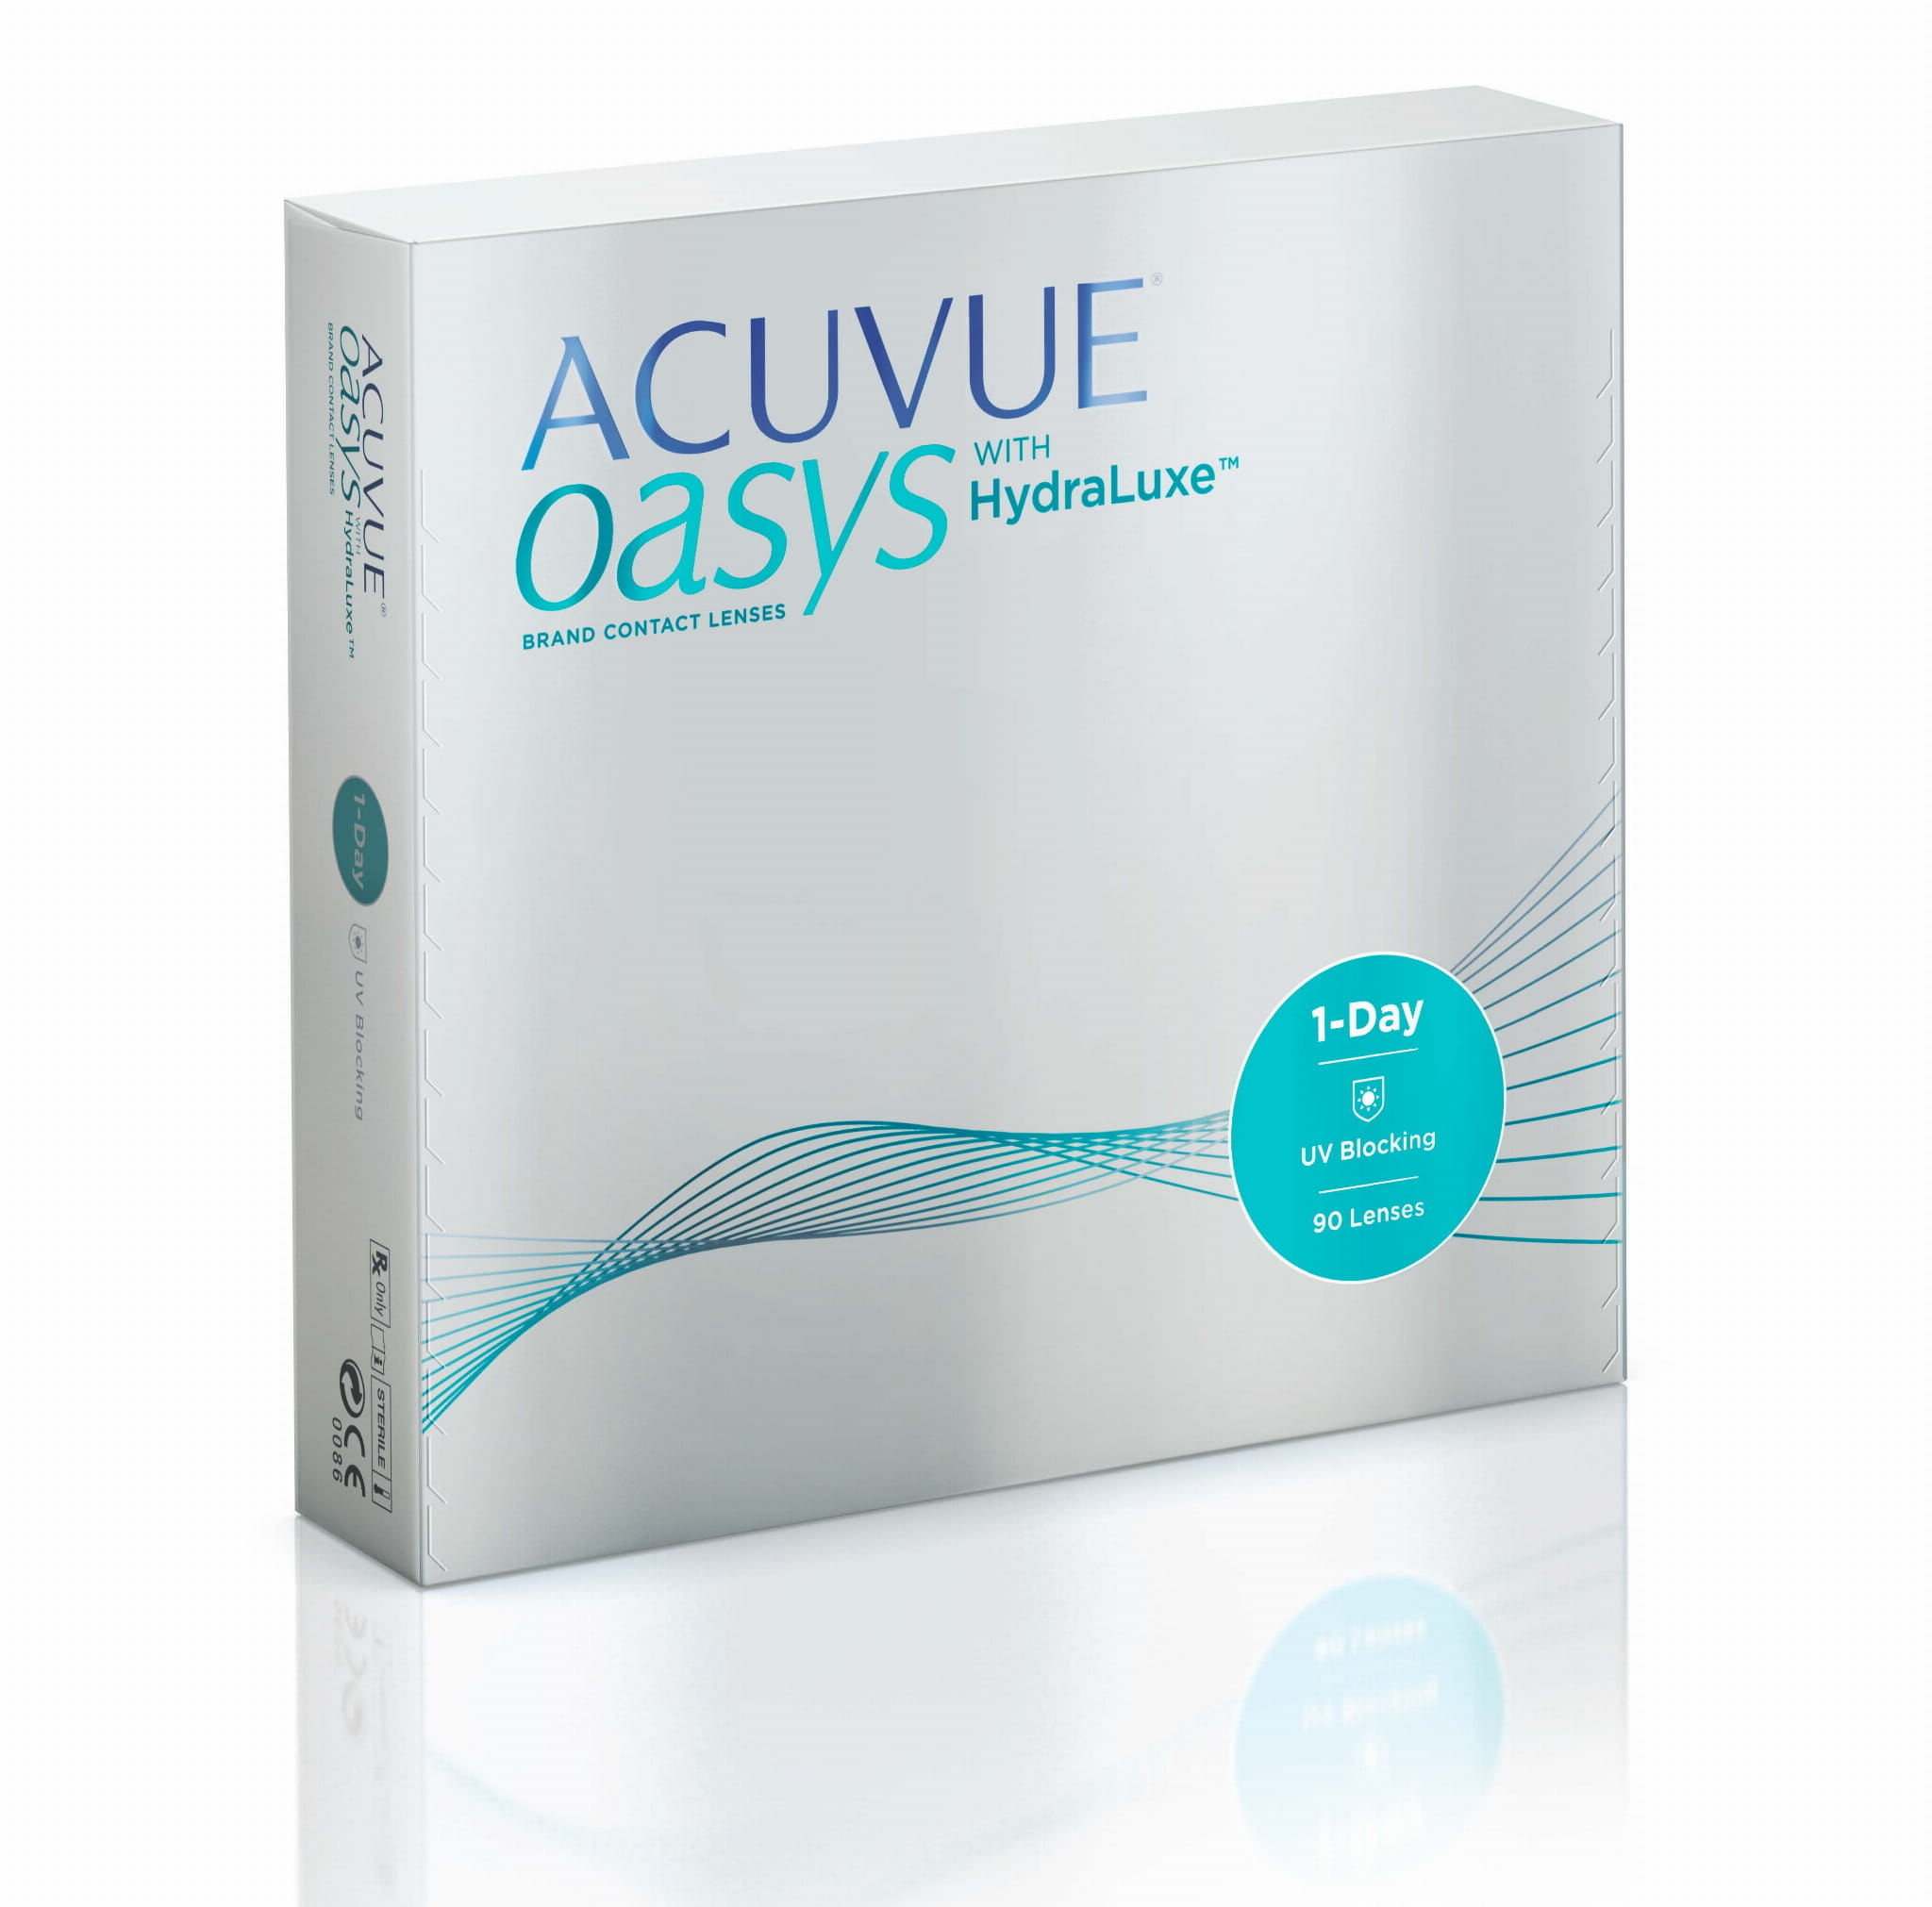 Acuvue Oasys 1-Day HydraLuxe, 90 szt.